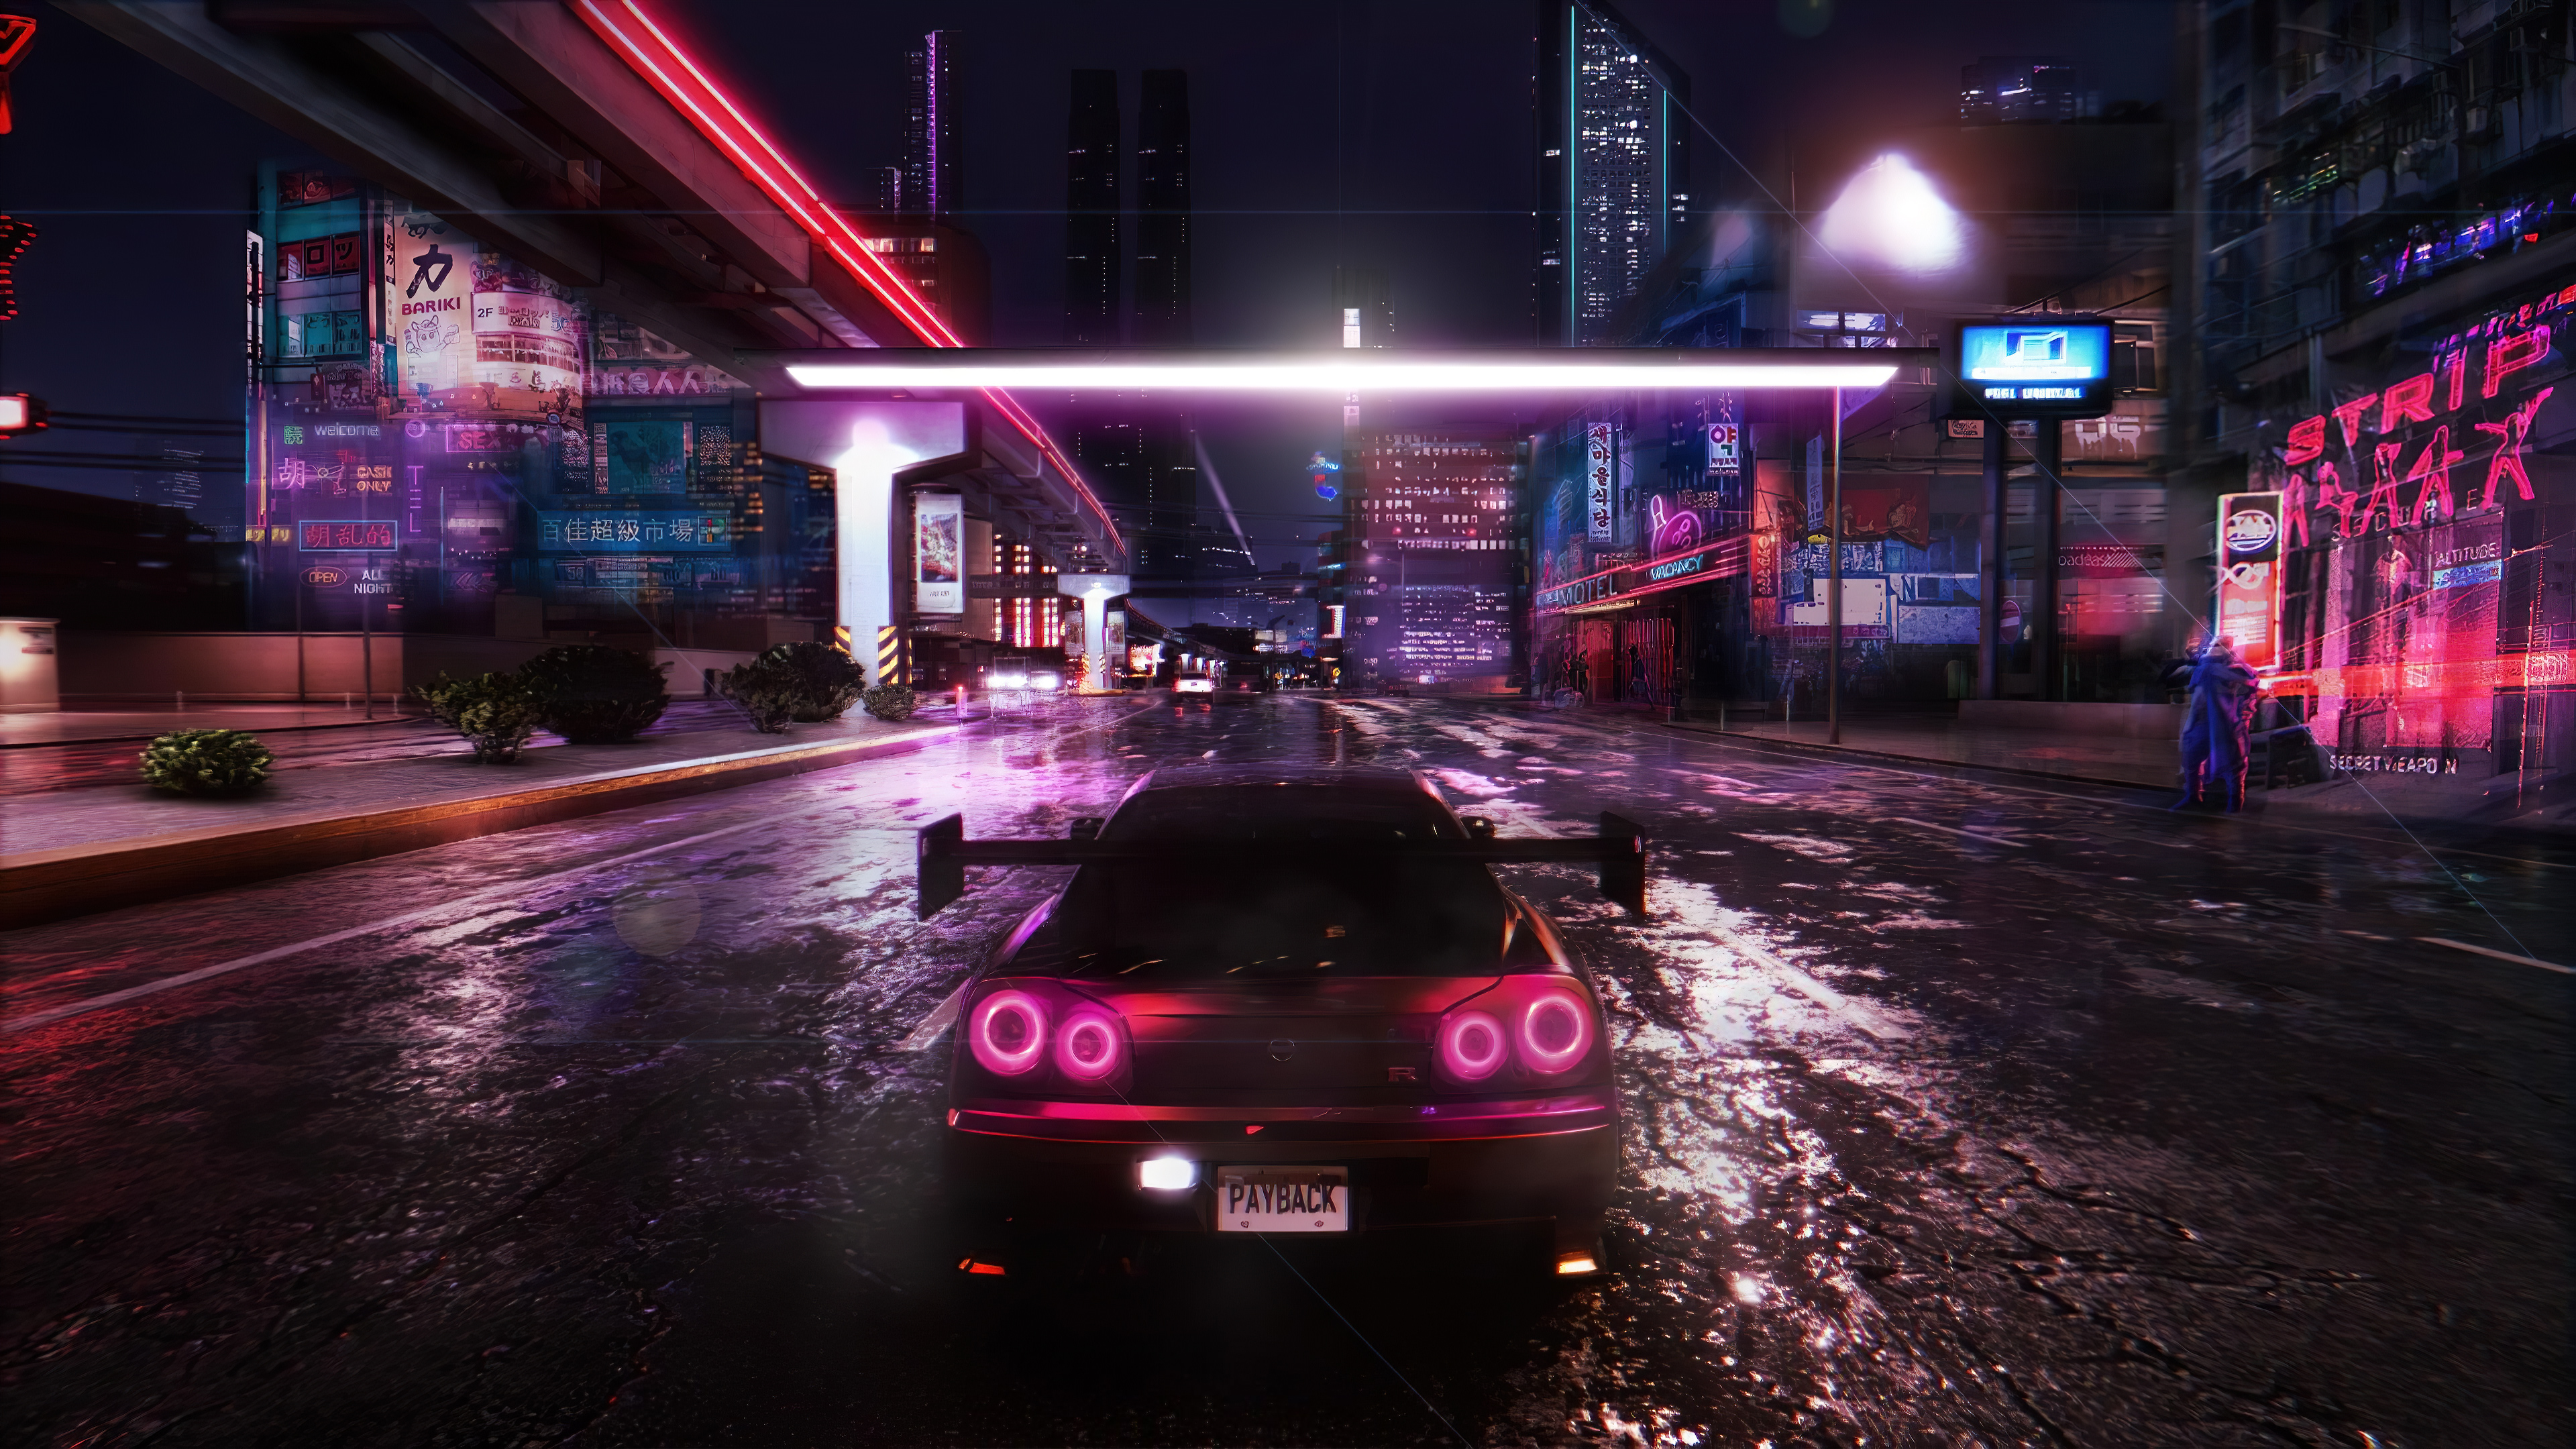 need for speed payback cyberpunk 1589582675 - Need For Speed Payback Cyberpunk - Need For Speed Payback Cyberpunk 4k wallpapers